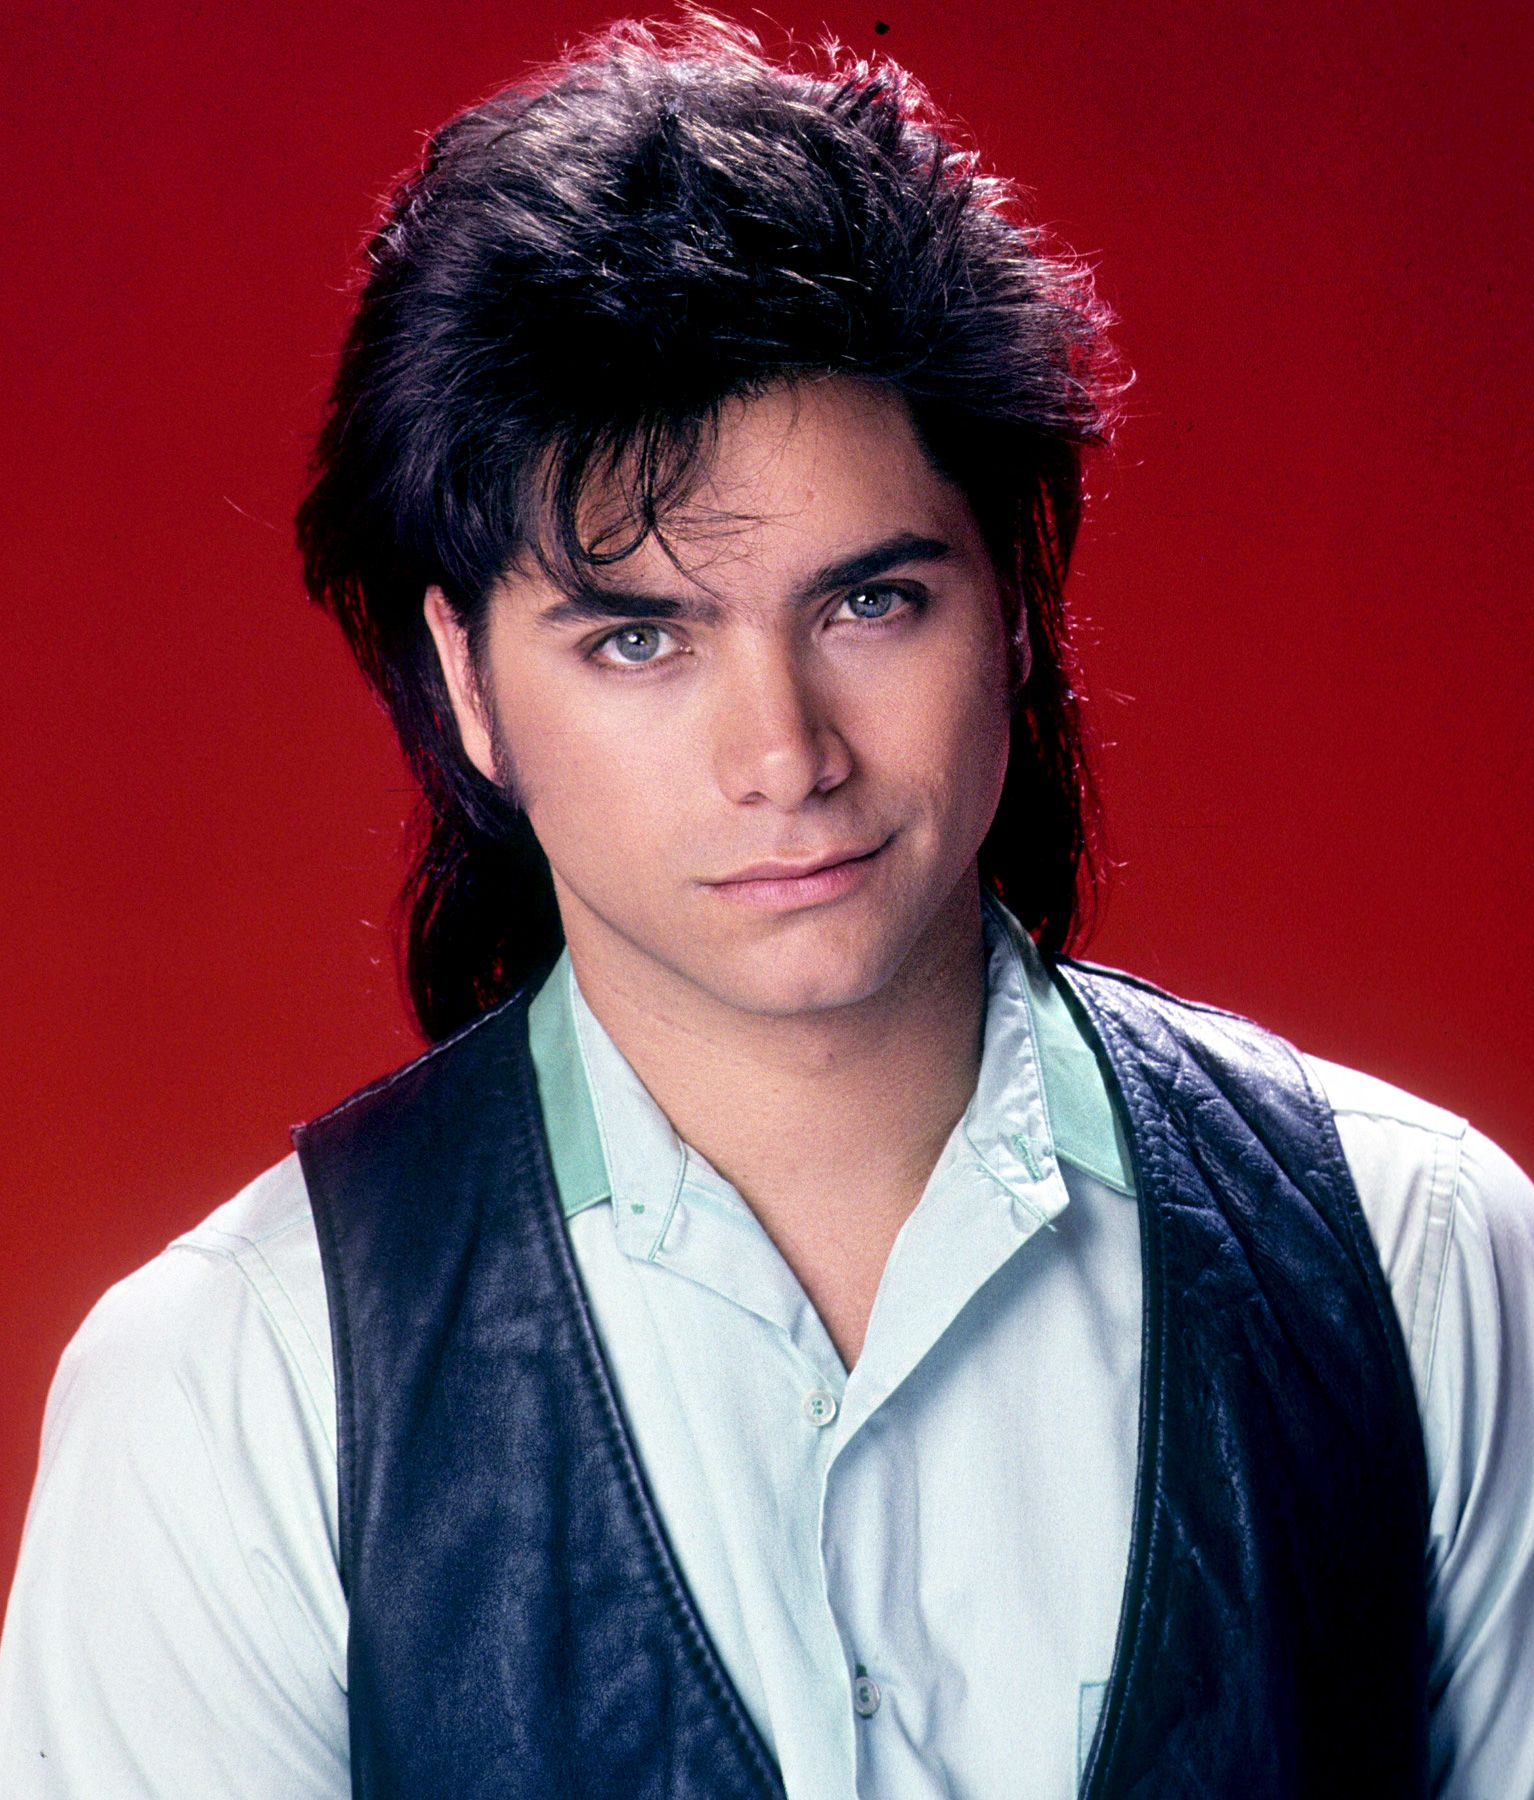 John Stamos To Reunite With Full House Band Jesse And The Rippers